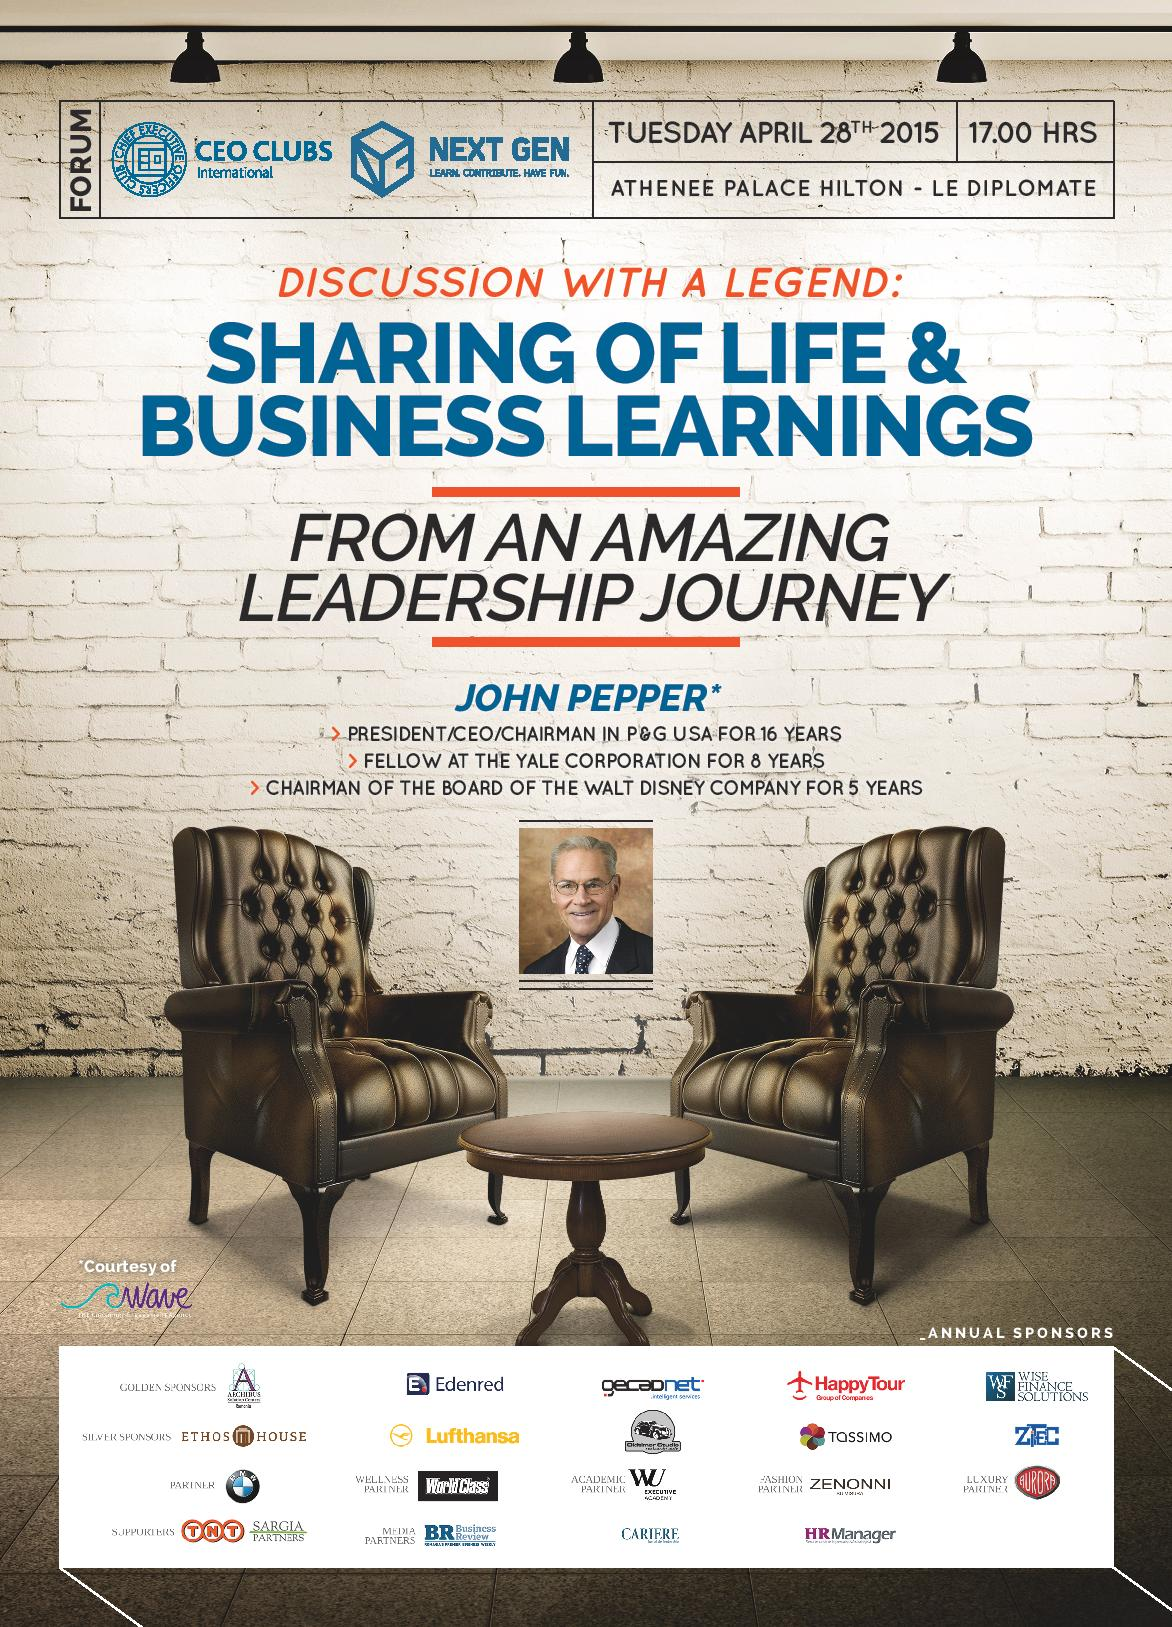 7th CEO Clubs Forum: Sharing of Life & Business Learnings from an amazing Leadership Journey